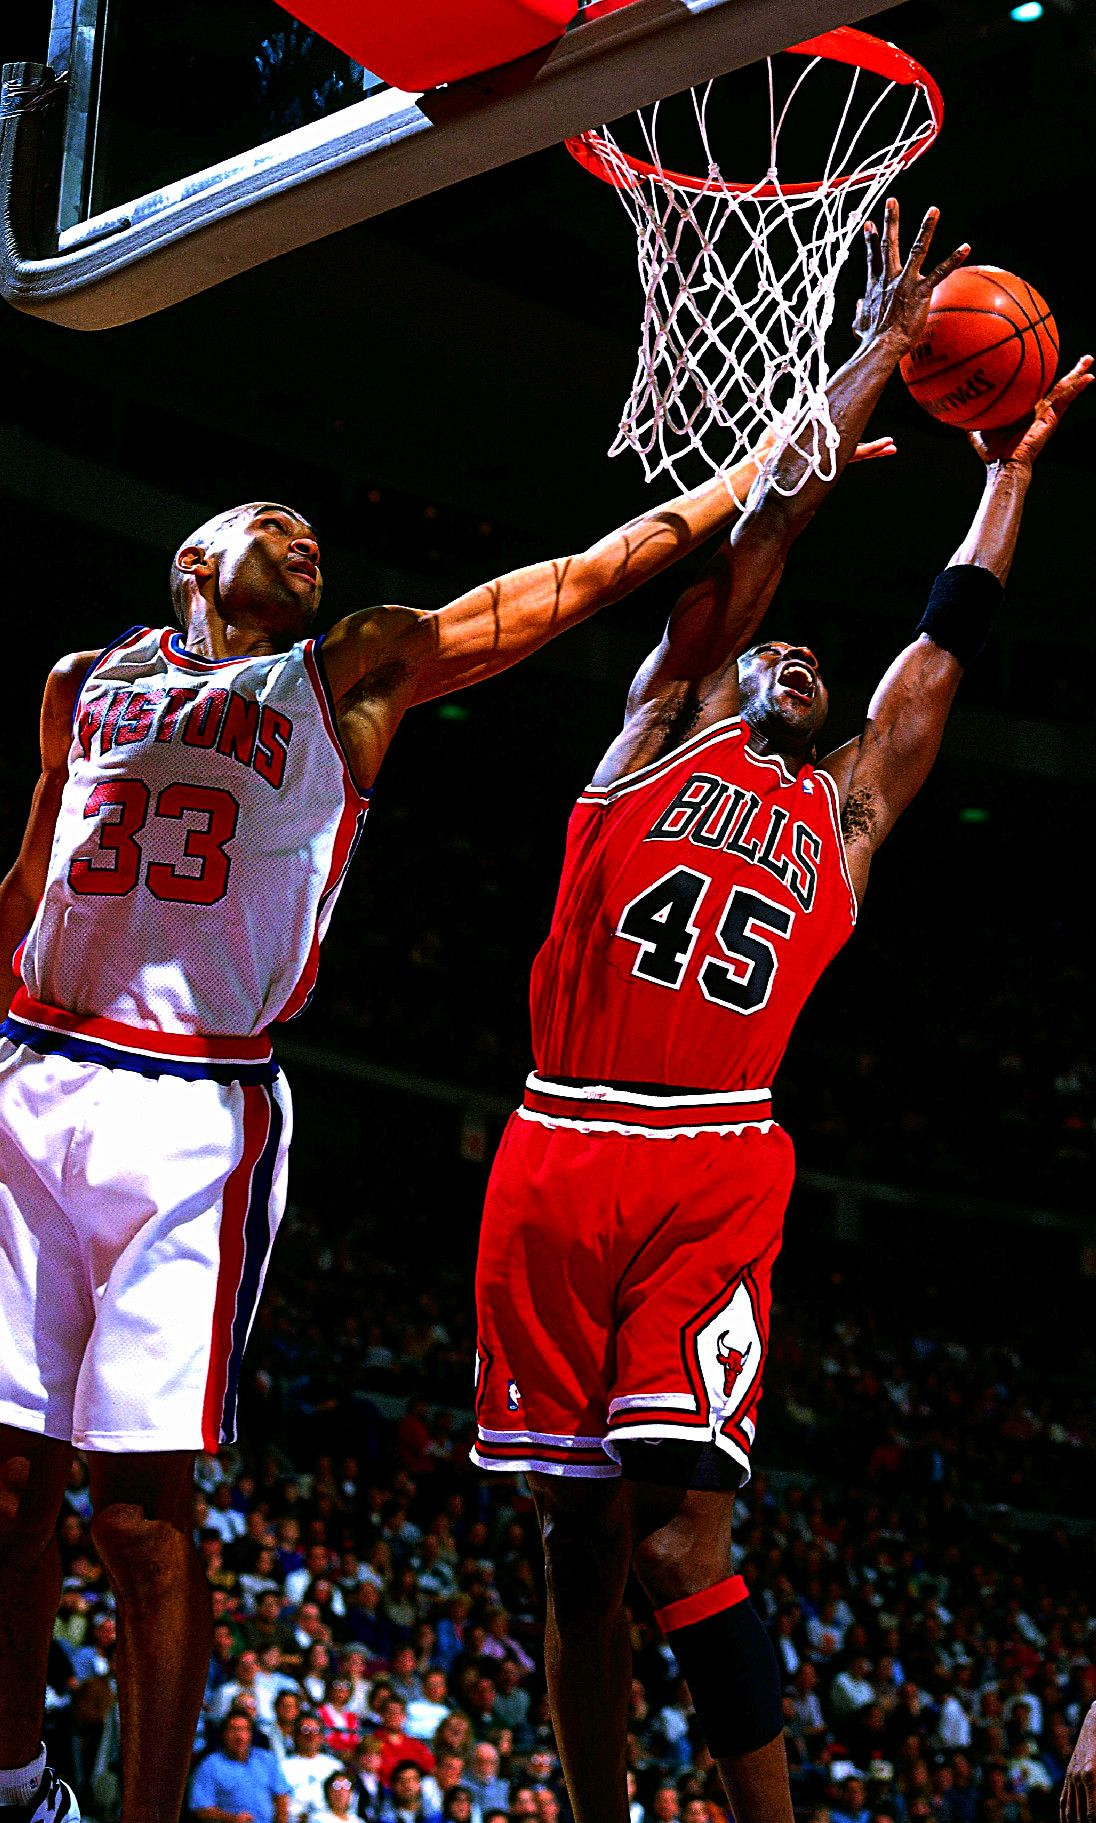 finest selection d6df5 edb8a Grant Hill and Michael Jordan, I will admit Jordan is the greatest of all  time but he s still a chump in my books!